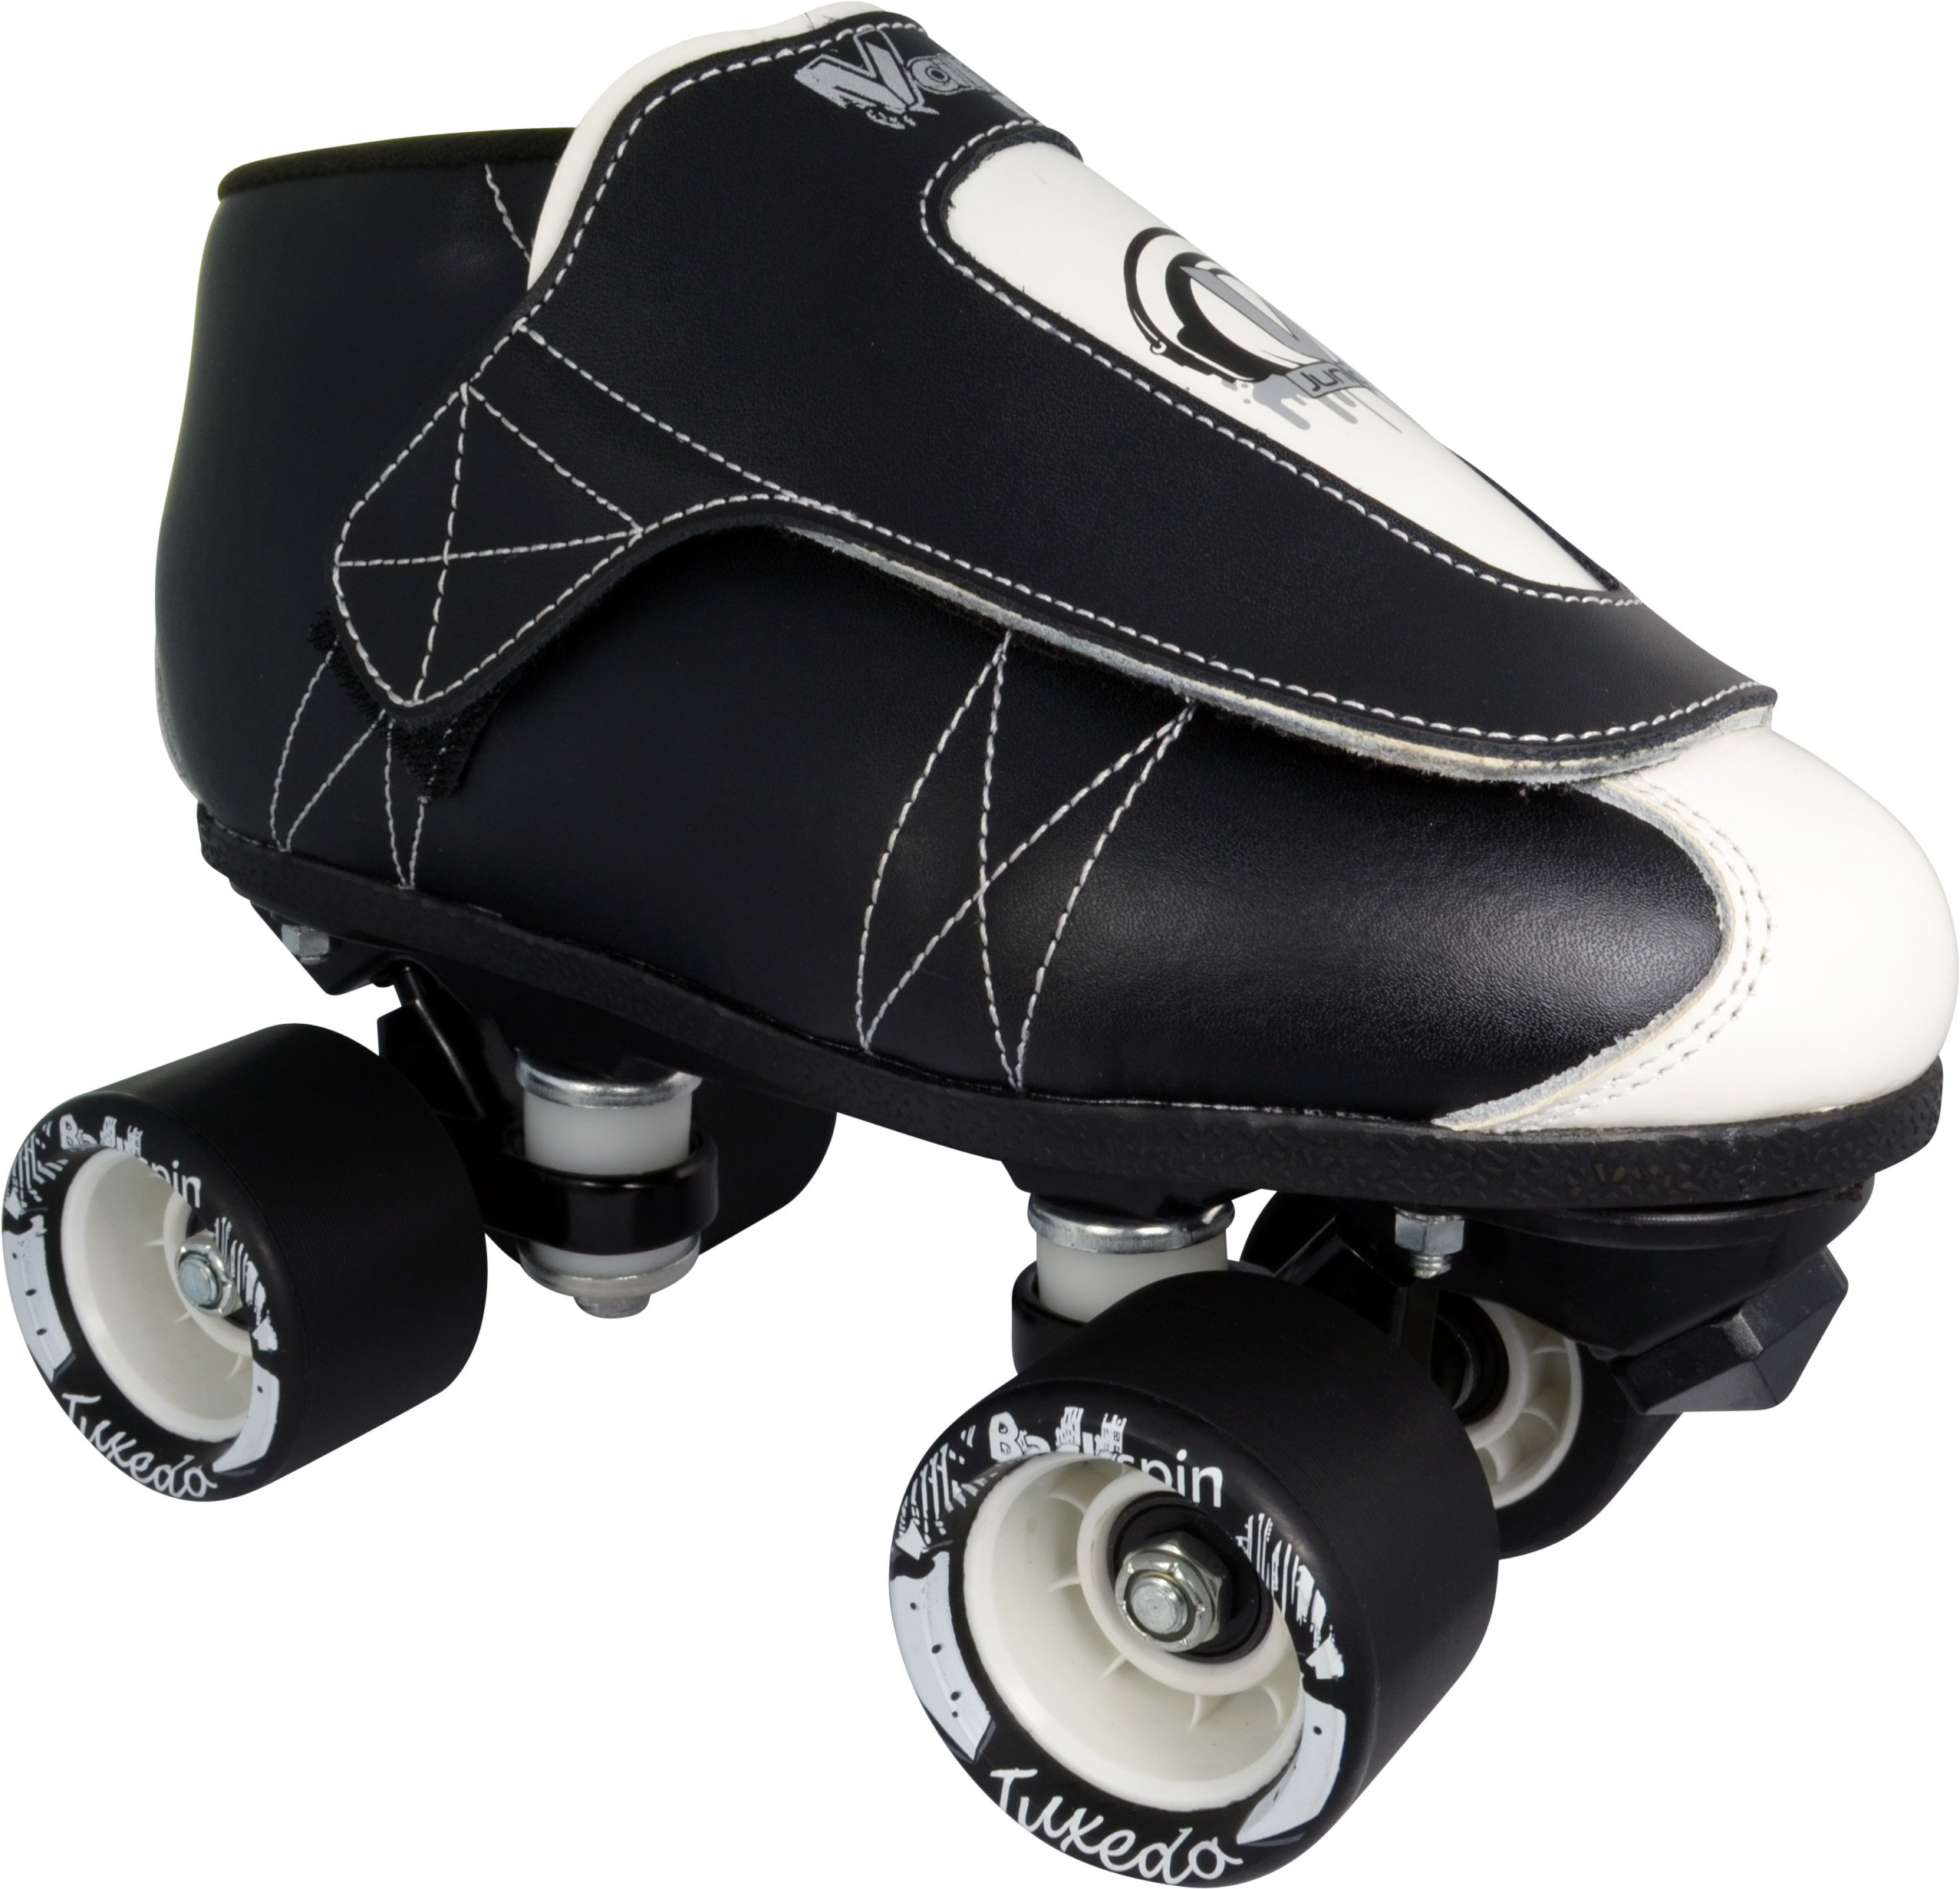 Vanilla Jr. Tuxedo Quad Speed Roller Jam Skates (Mens 8 / Ladies 8) by VNLA